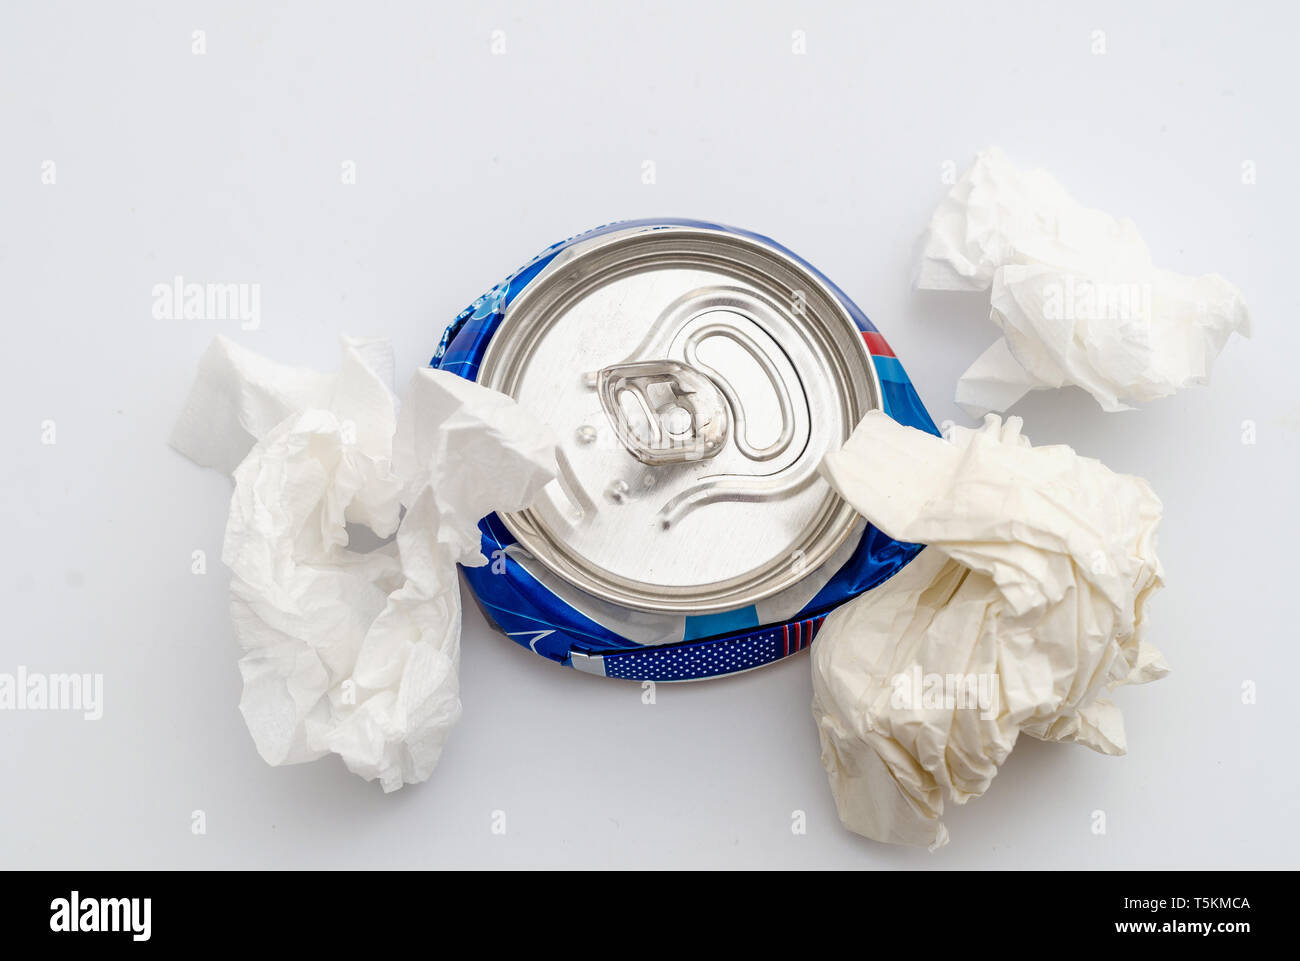 Crushed compressed aluminum can of a carbonated drink with crumpled sheets of paper. Pollution, waste, ecology. - Stock Image